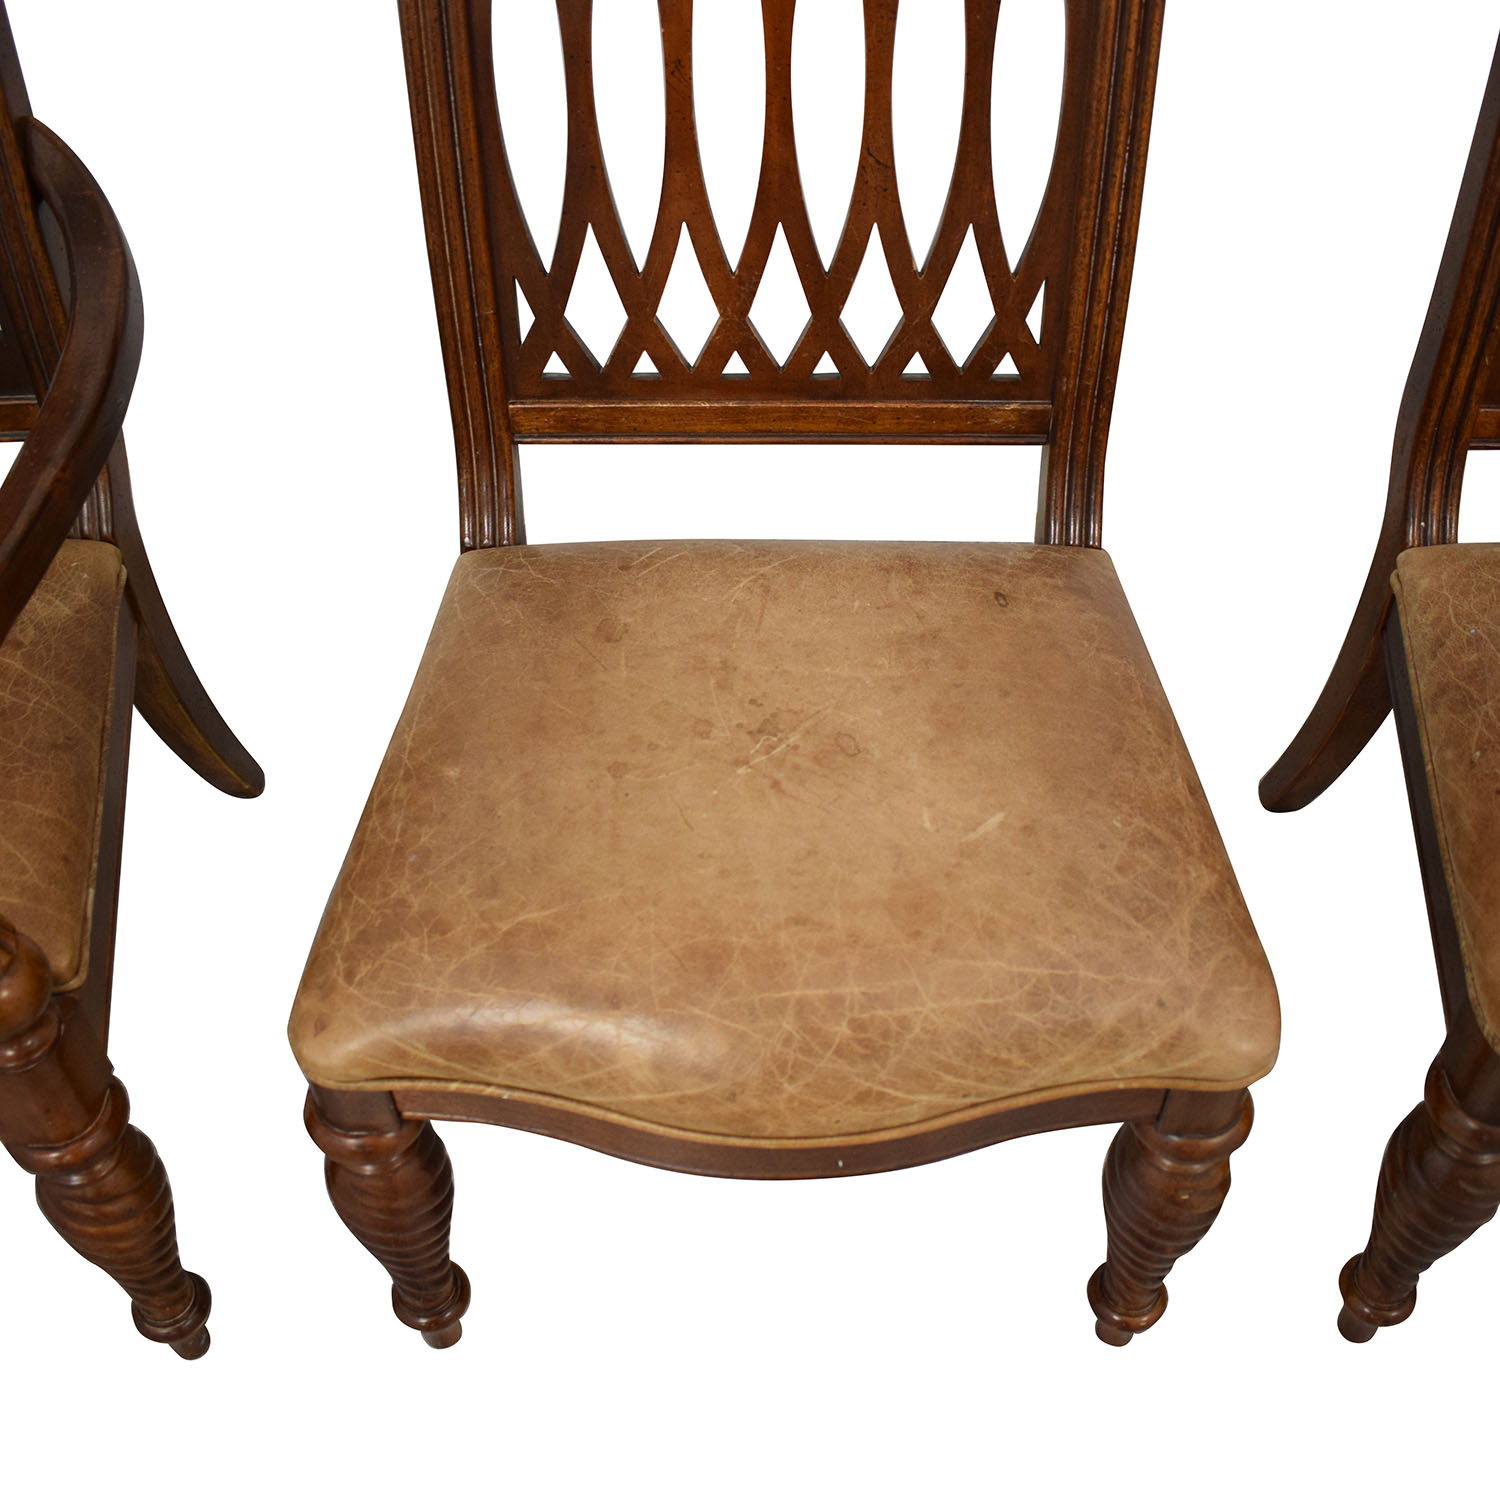 Bernhardt Bernhardt Embassy Row Cherry Carved Wood Dining Chairs Dining Chairs